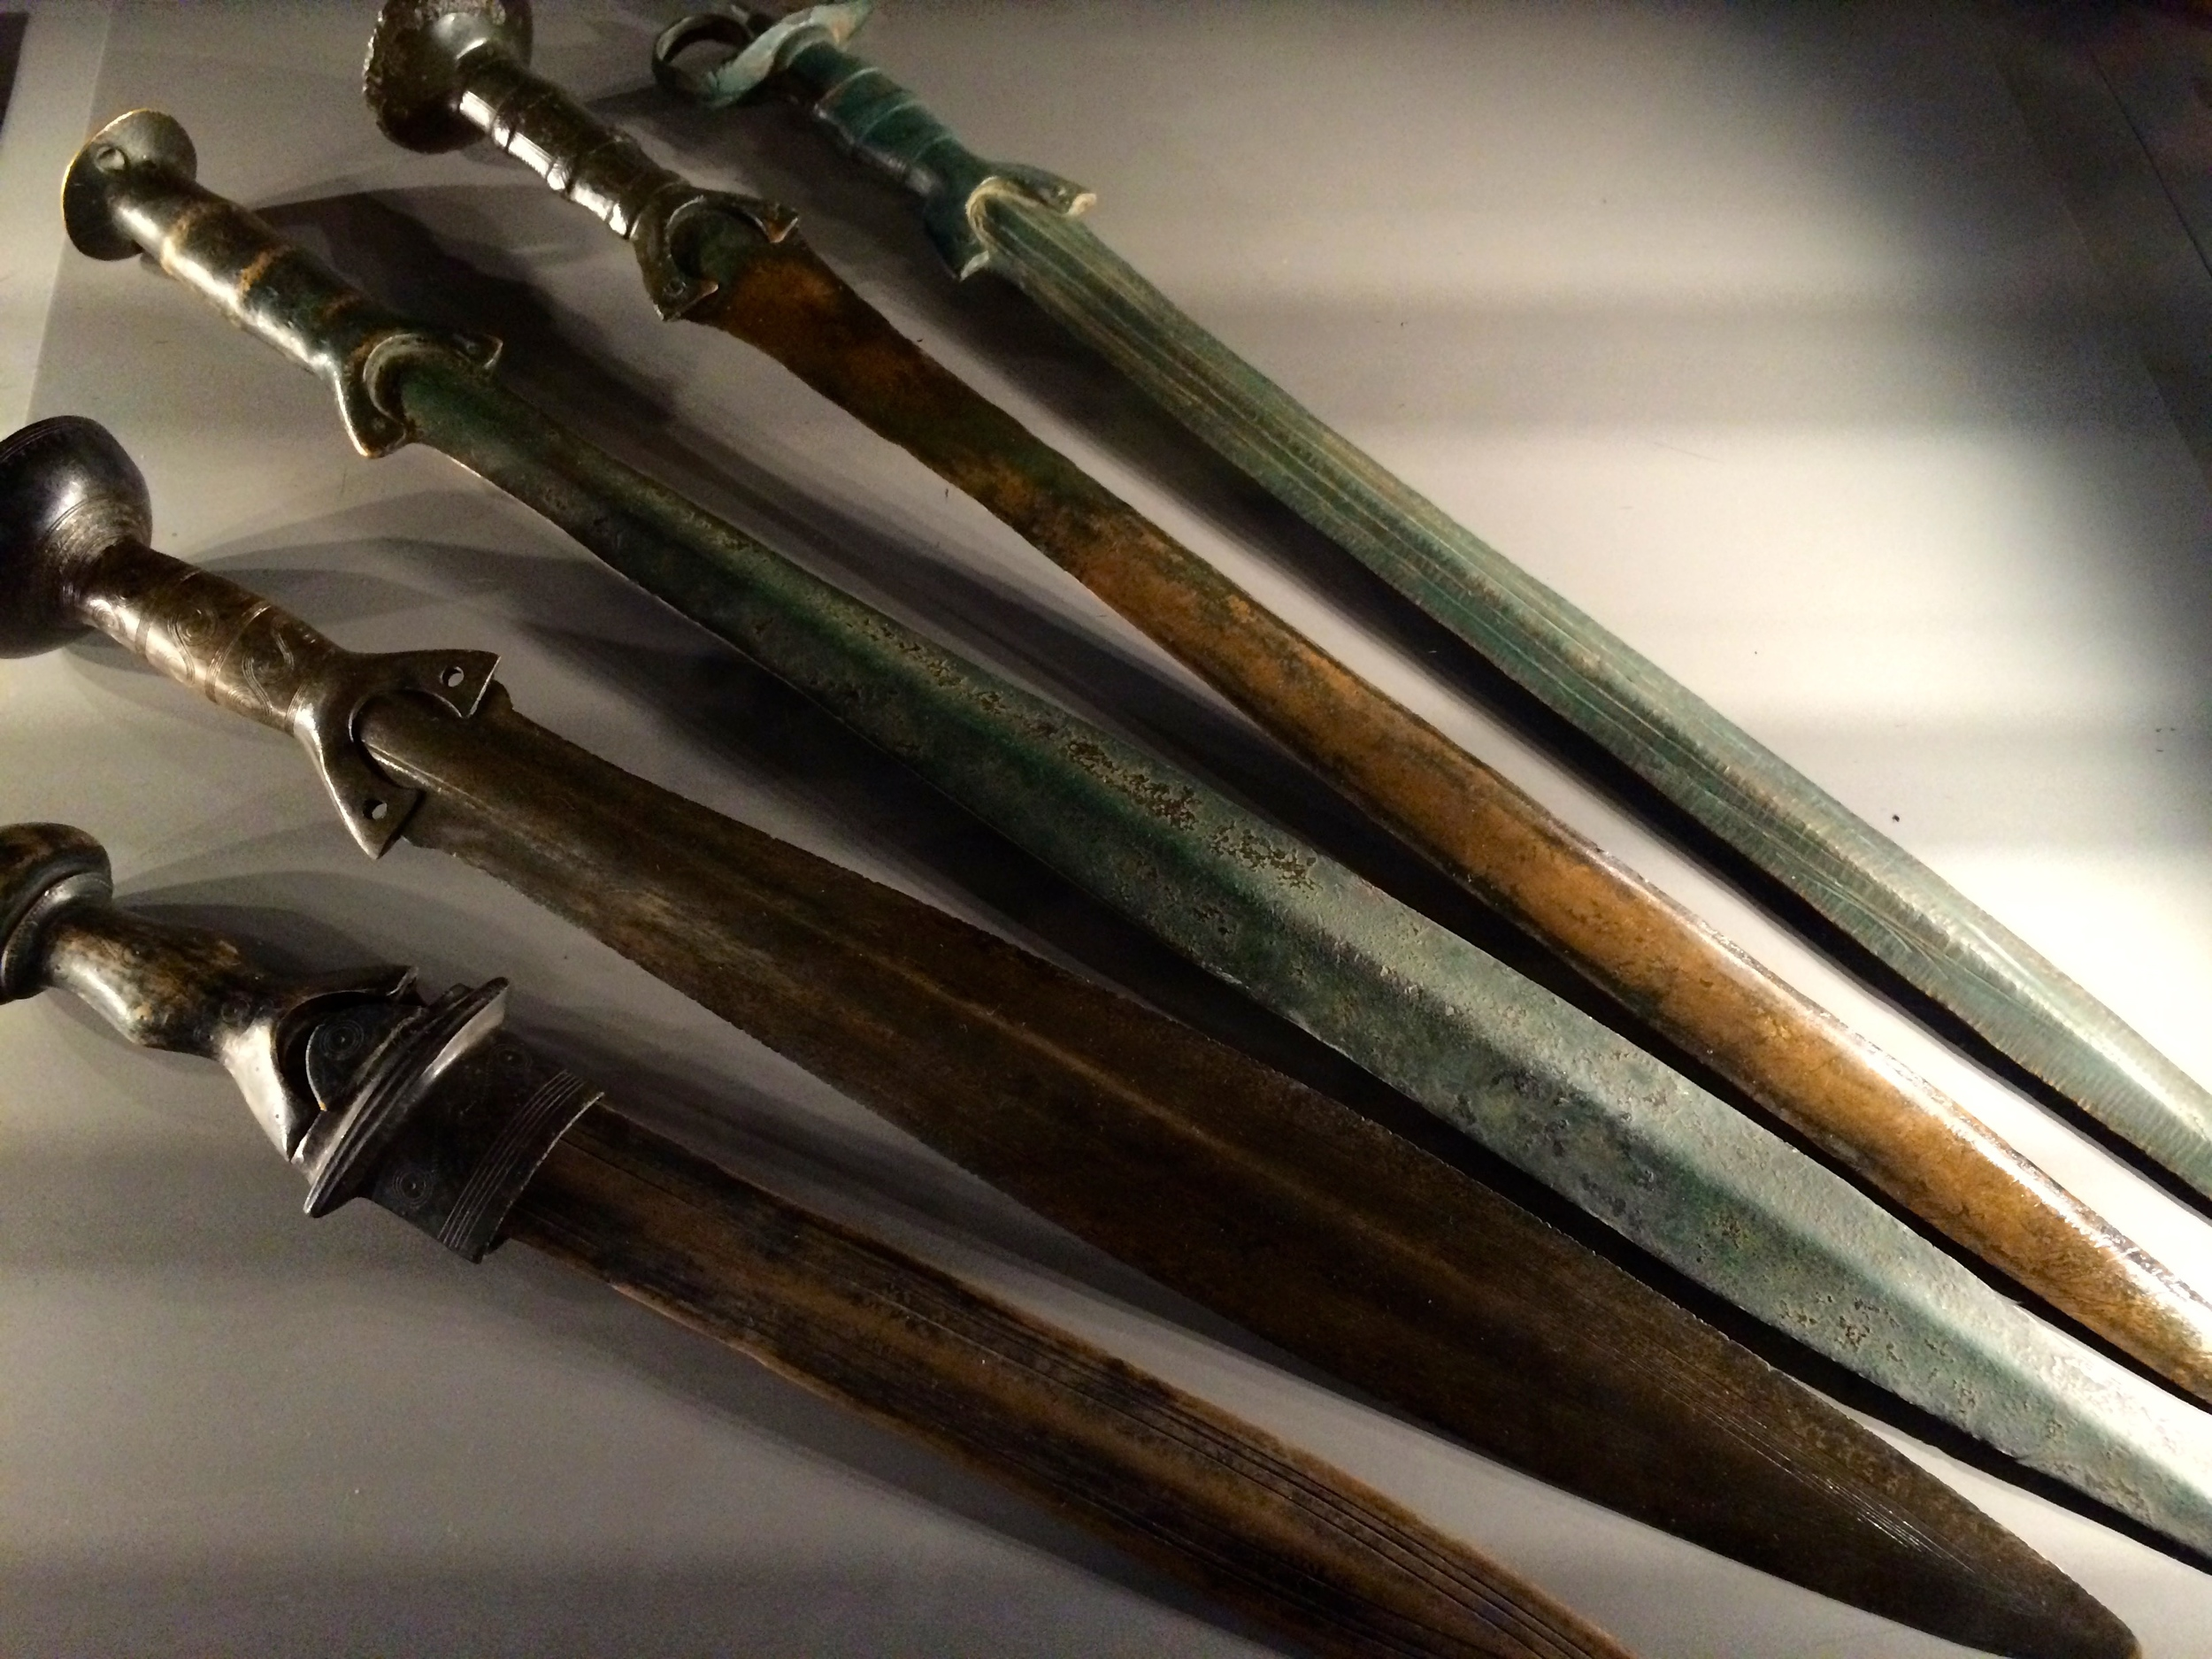 I don't care how old I get. I'm still gonna get super pumped when I see a display case of swords.